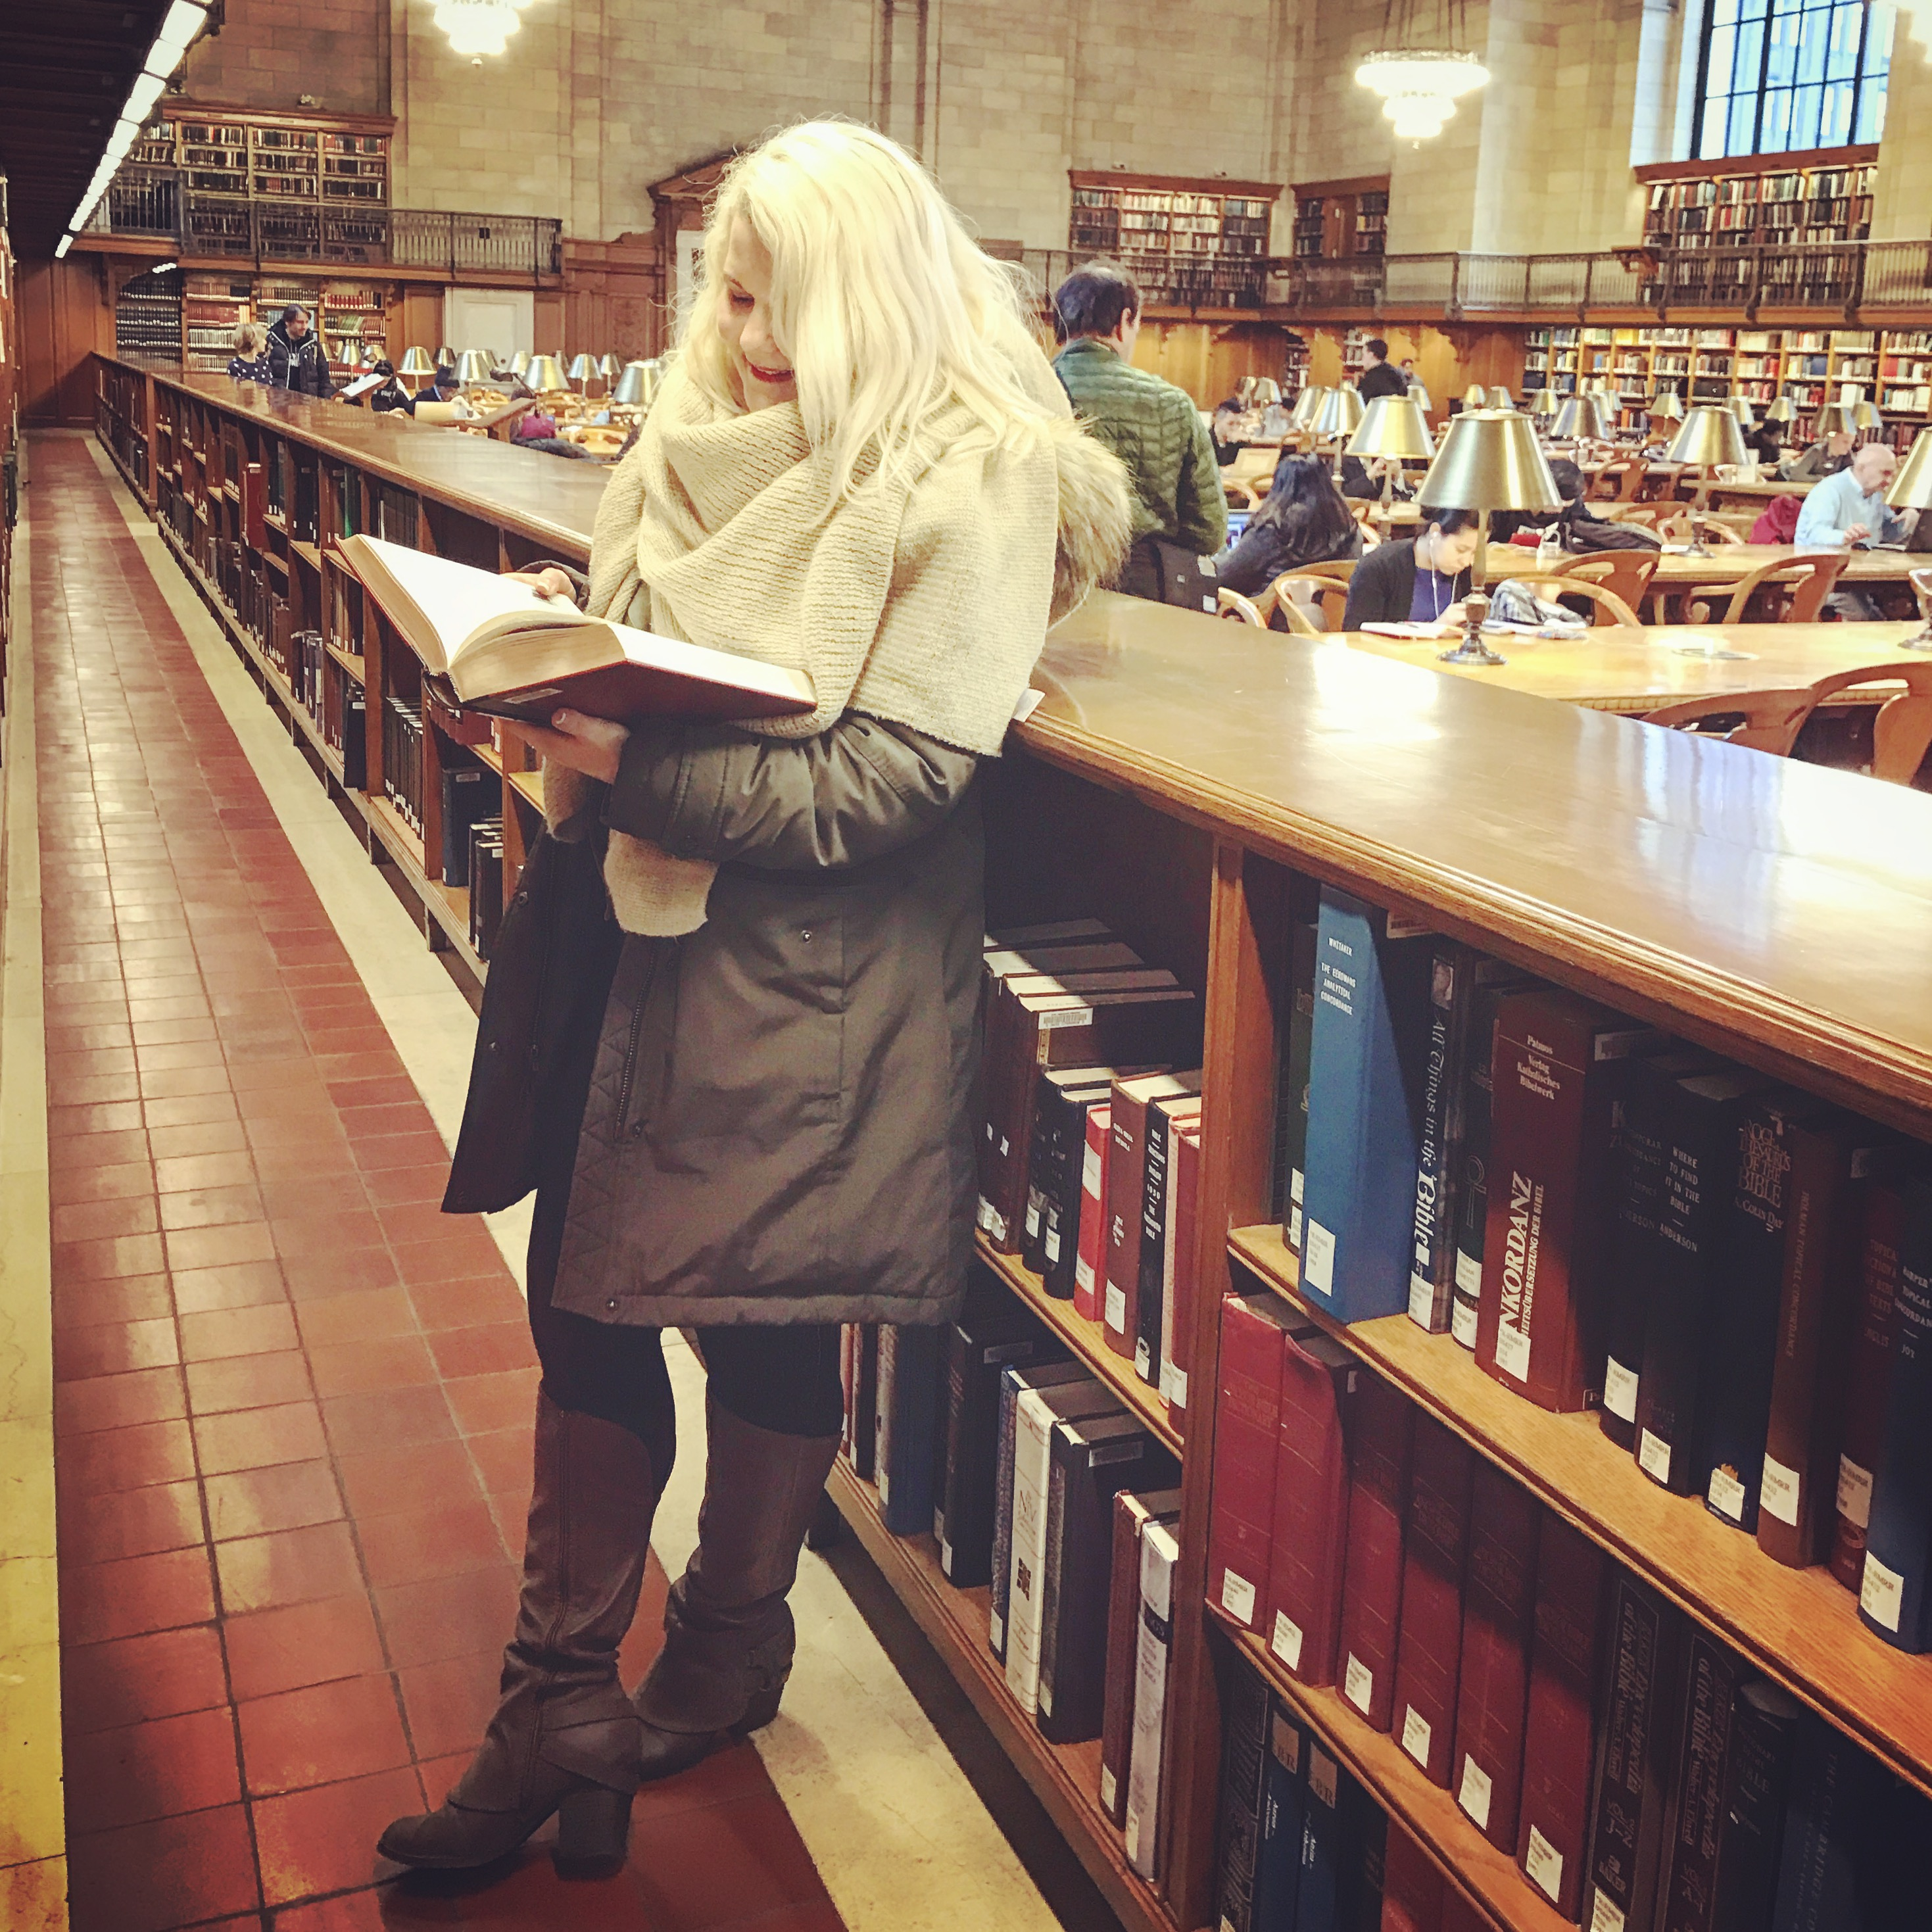 Wanderlusting in the New York Public Library